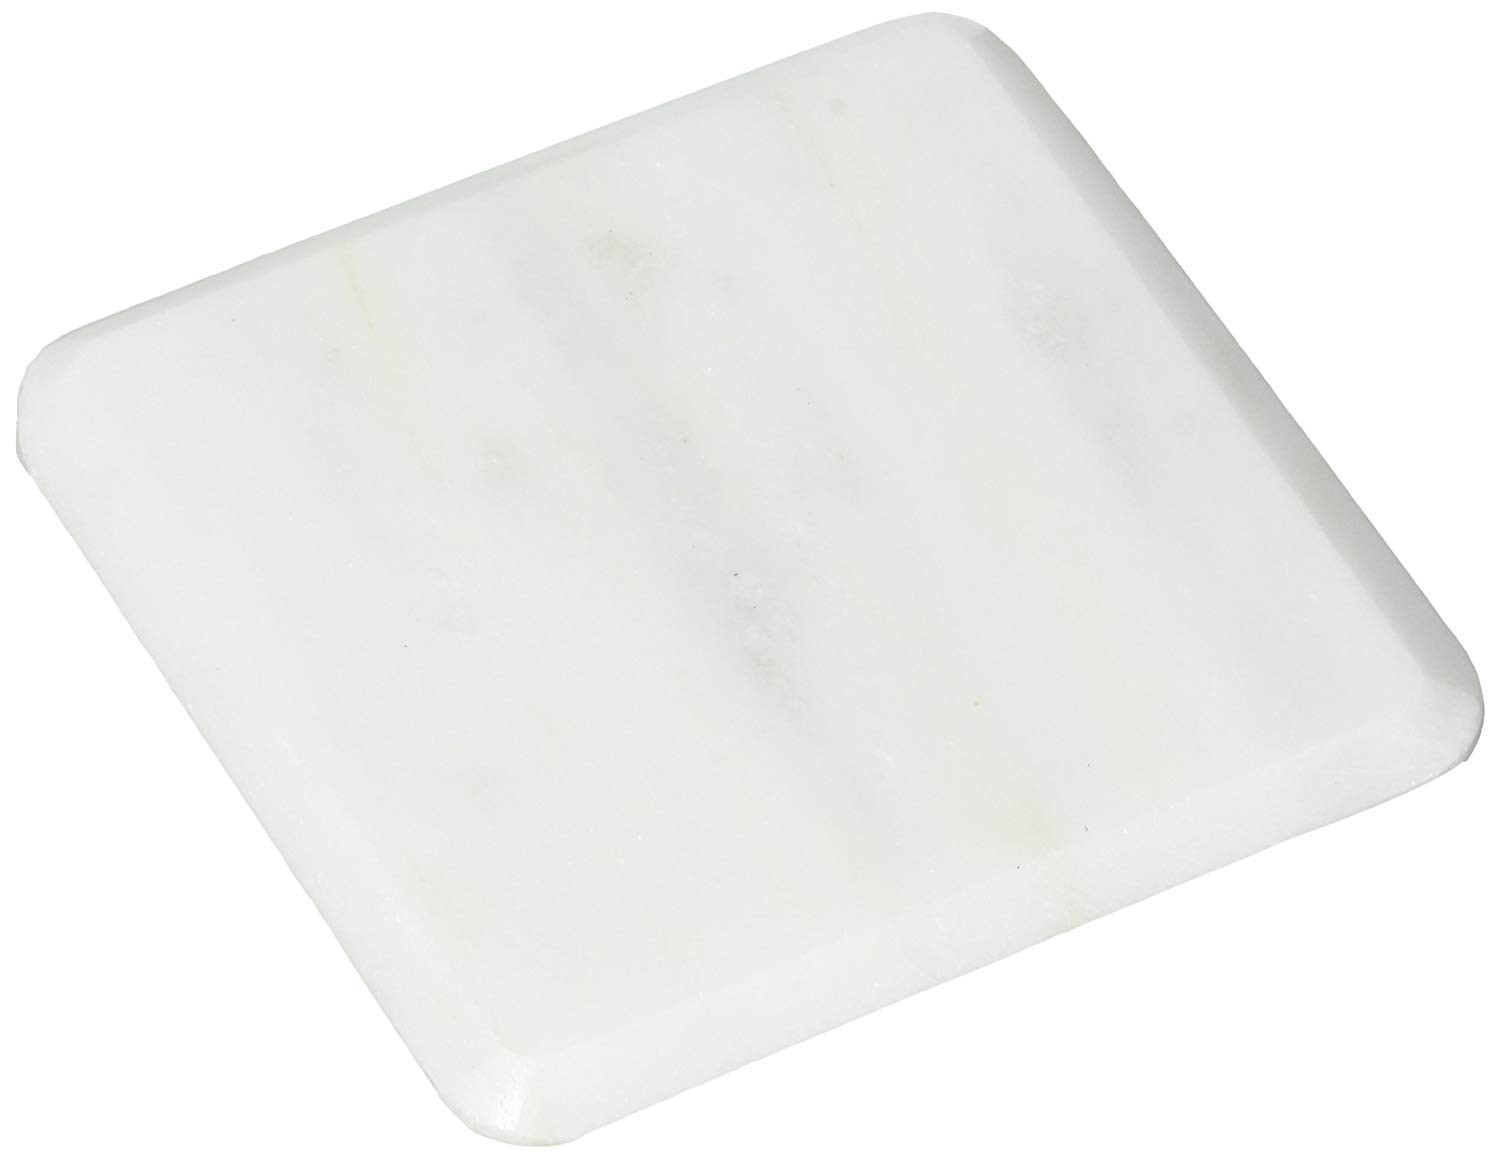 American Atelier 1330364 Marble Coasters (Set of 4), White